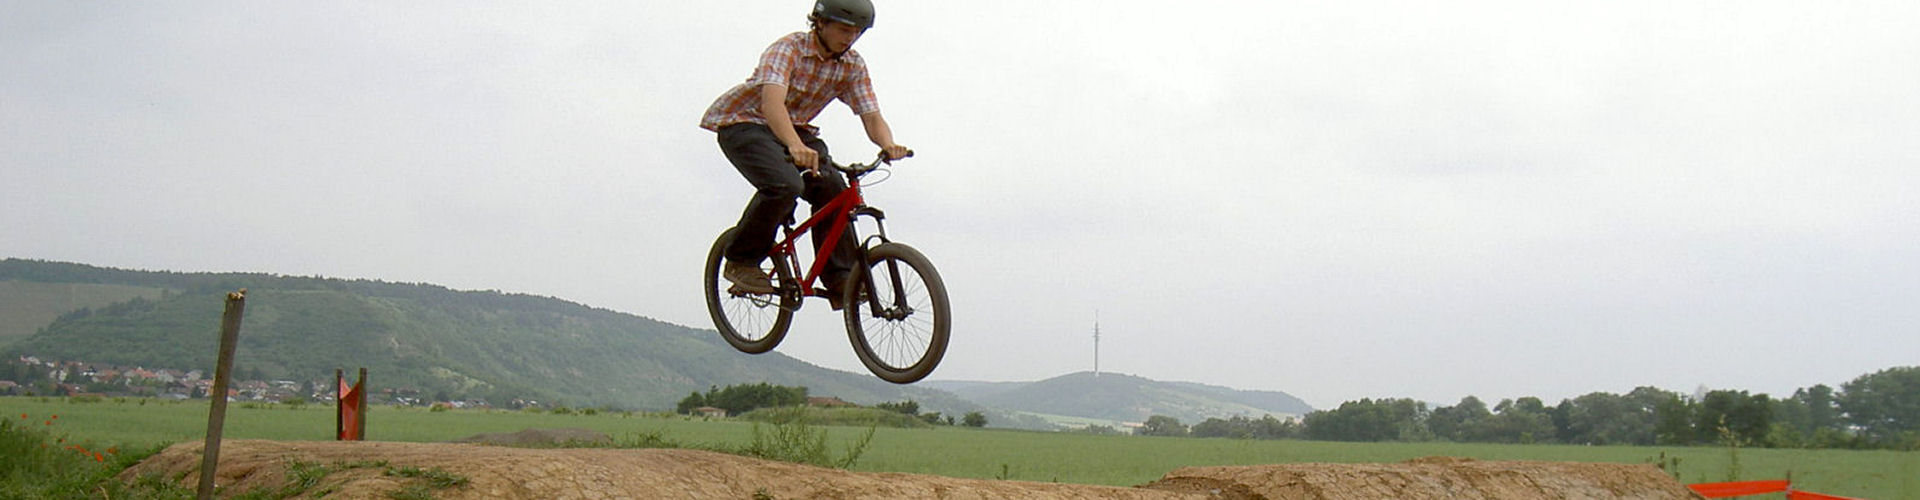 500 mountainbike 1